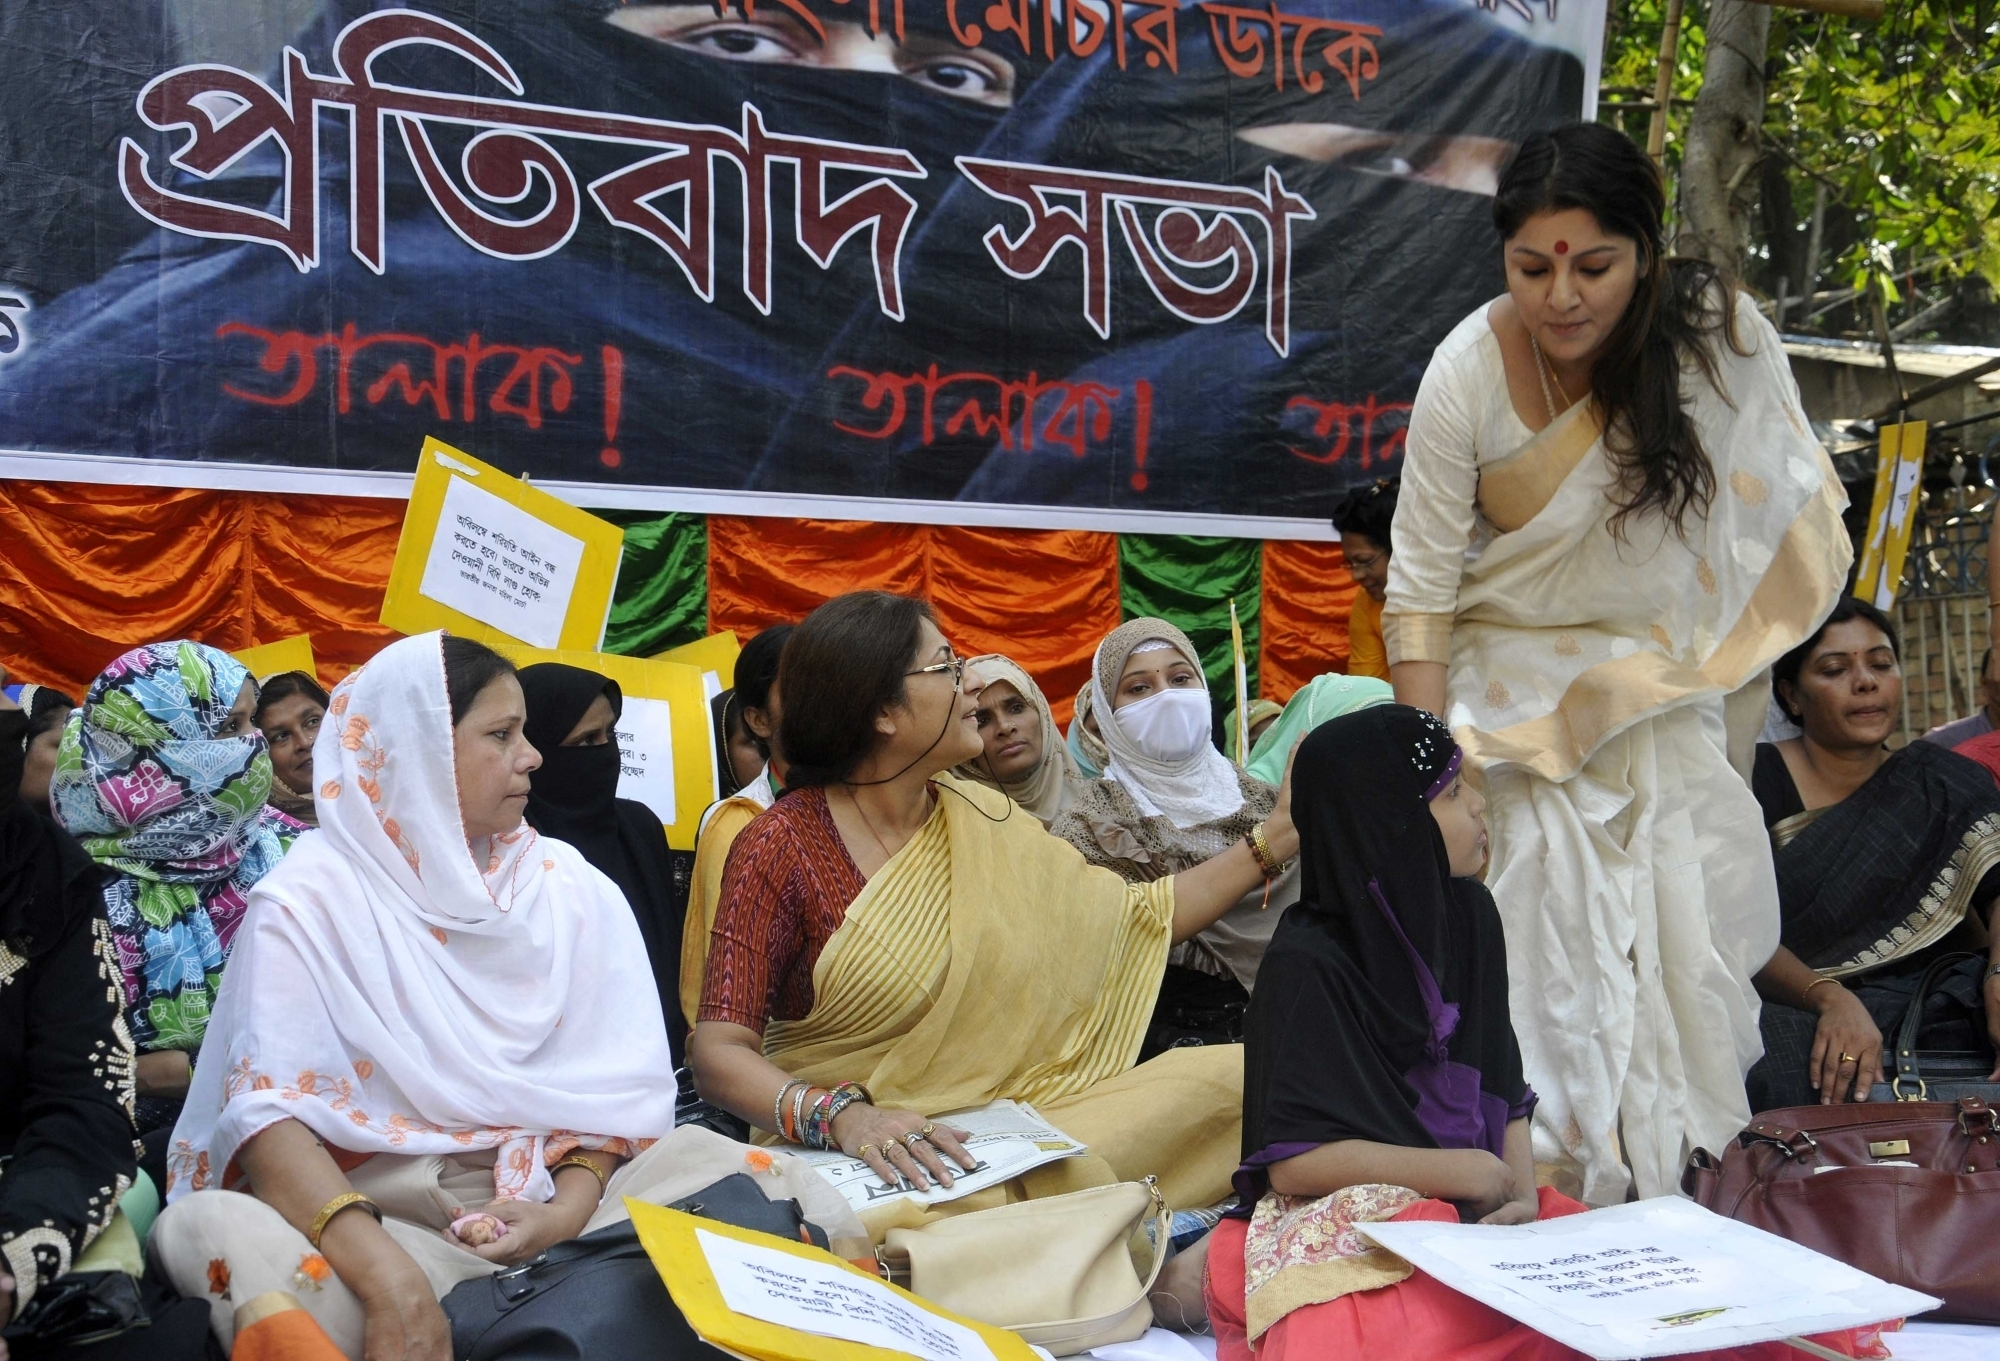 BJP leaders Roopa Ganguly and Locket Chatterjee at a demonstration against triple talaq in Kolkata. Image credit: IANS